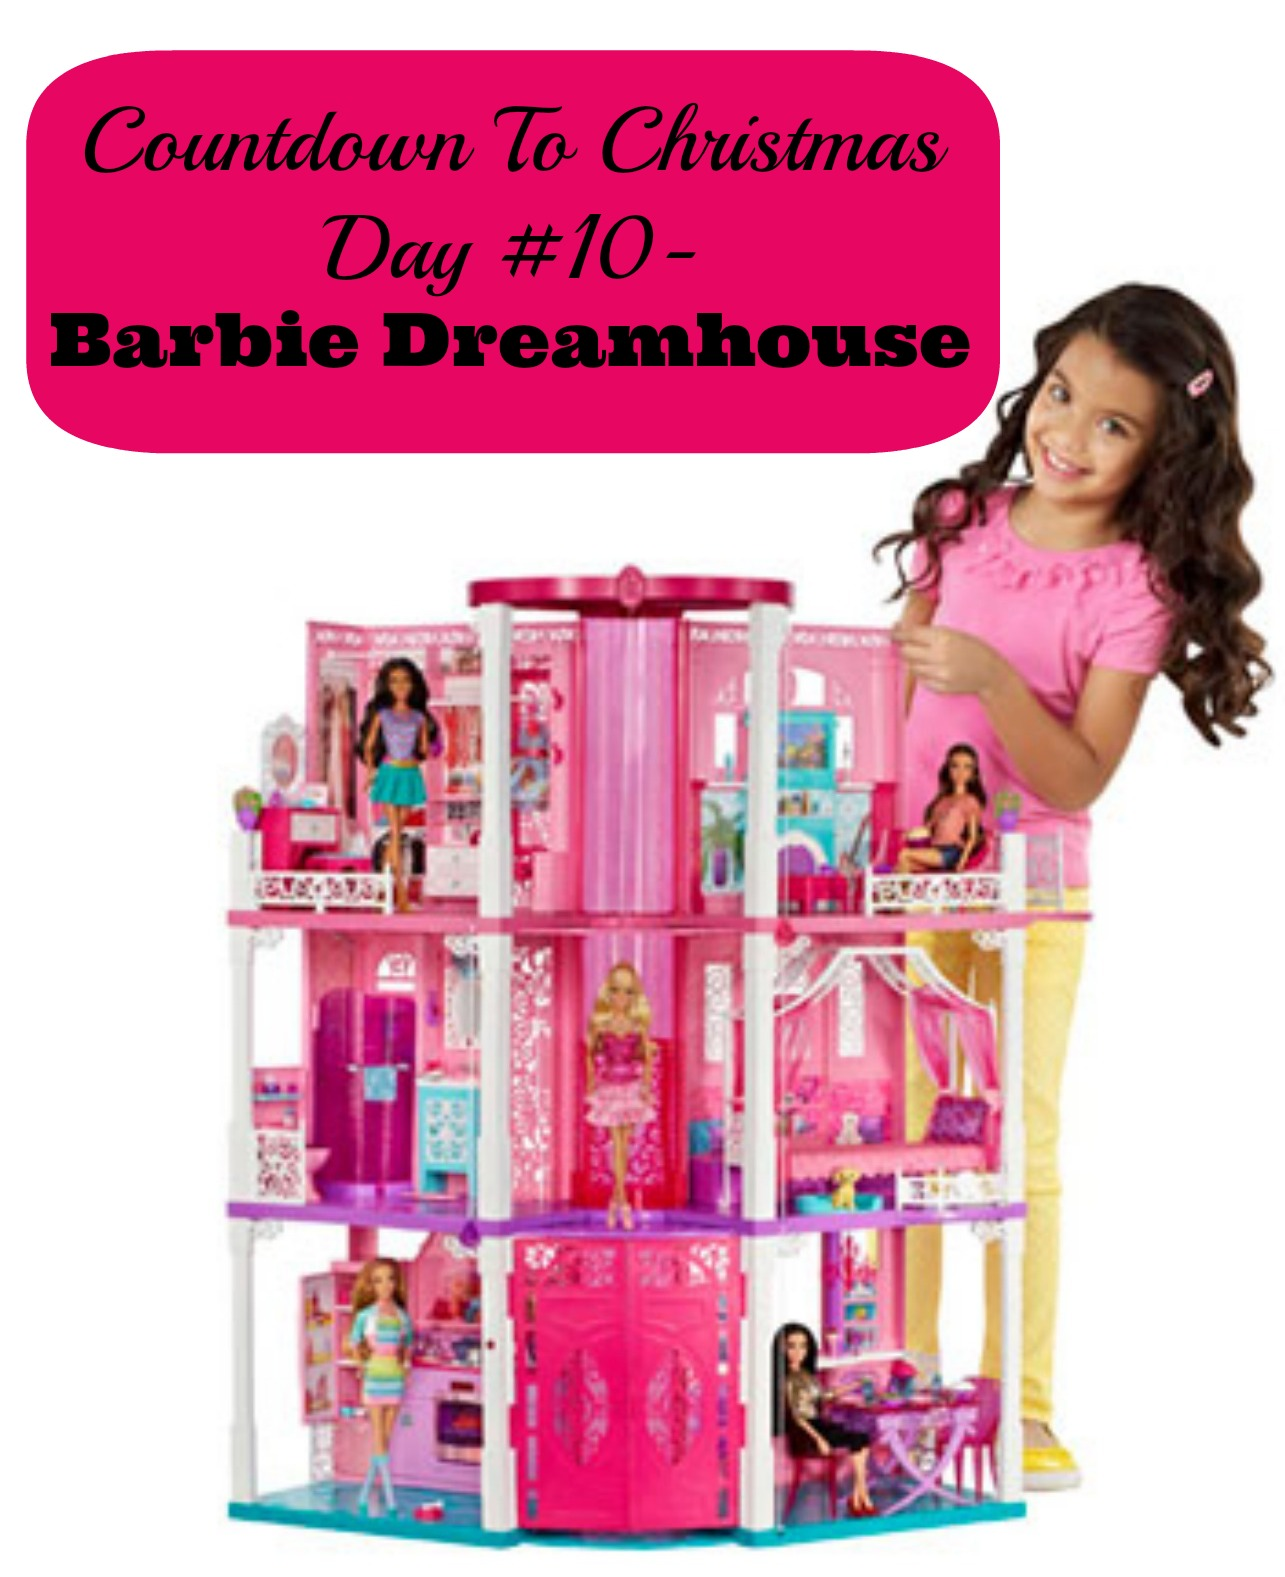 Countdown To Christmas Day 10 Barbie Dreamhouse from Mattel